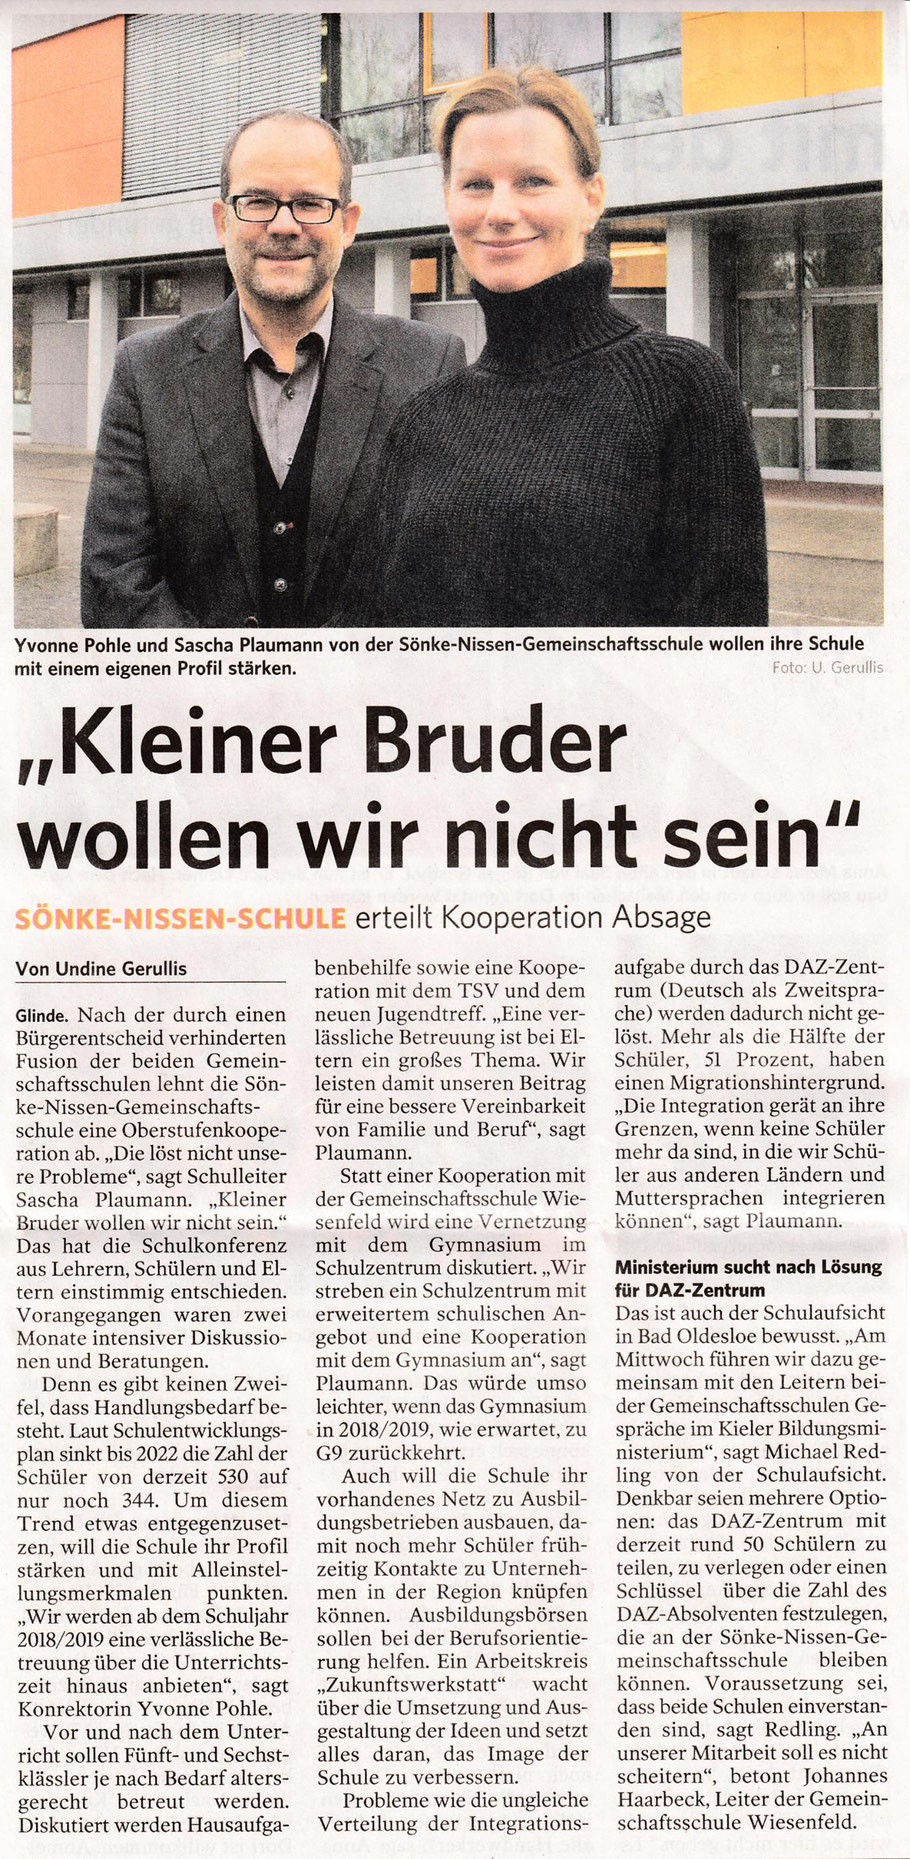 Hamburger Abendblatt 28. November 2017 - michael-hass-1965s Webseite!